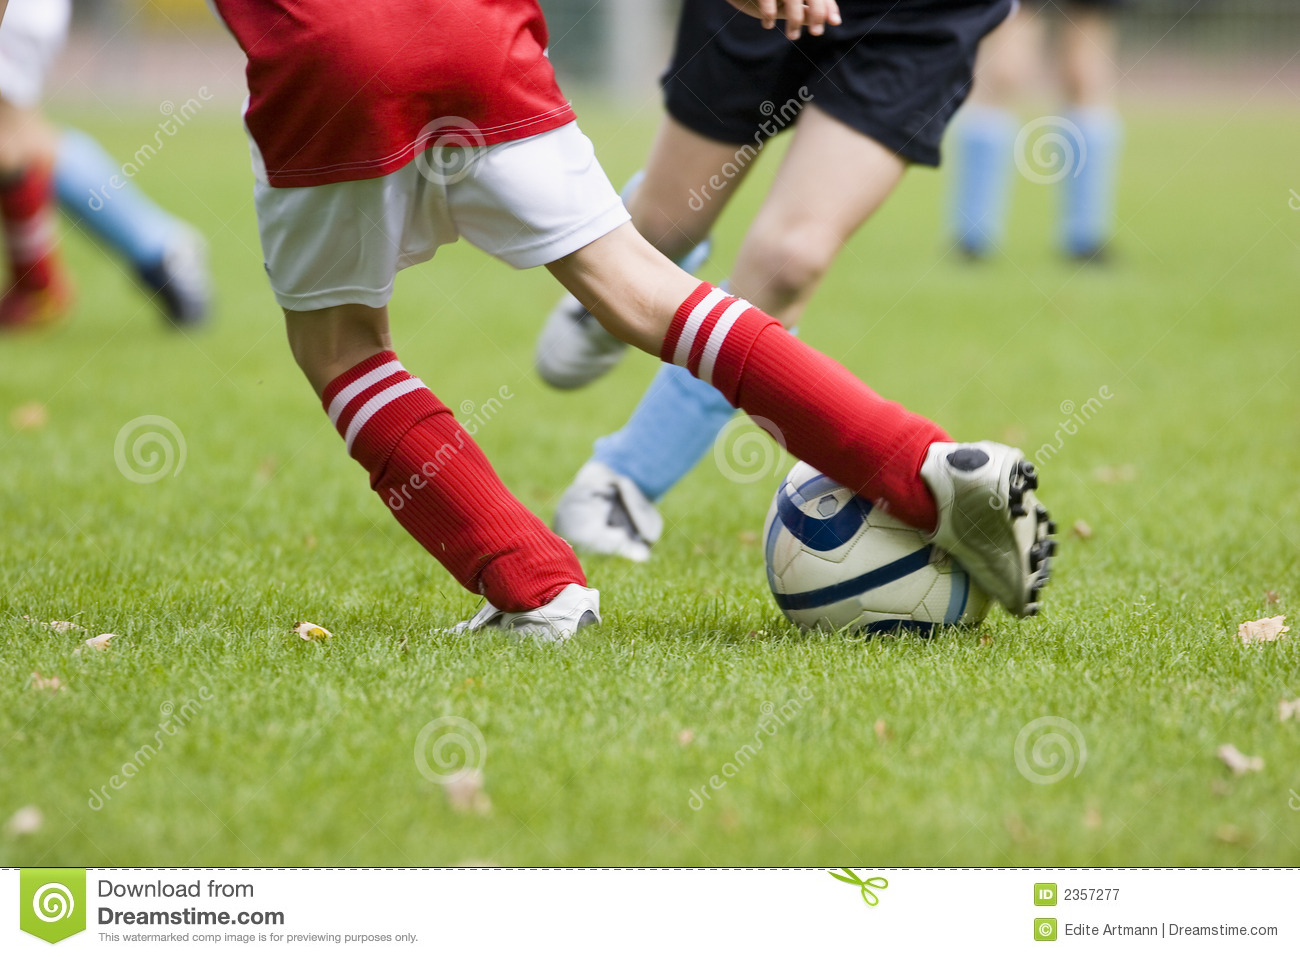 Detail Of A Football Match Stock Image Image Of Movement 2357277